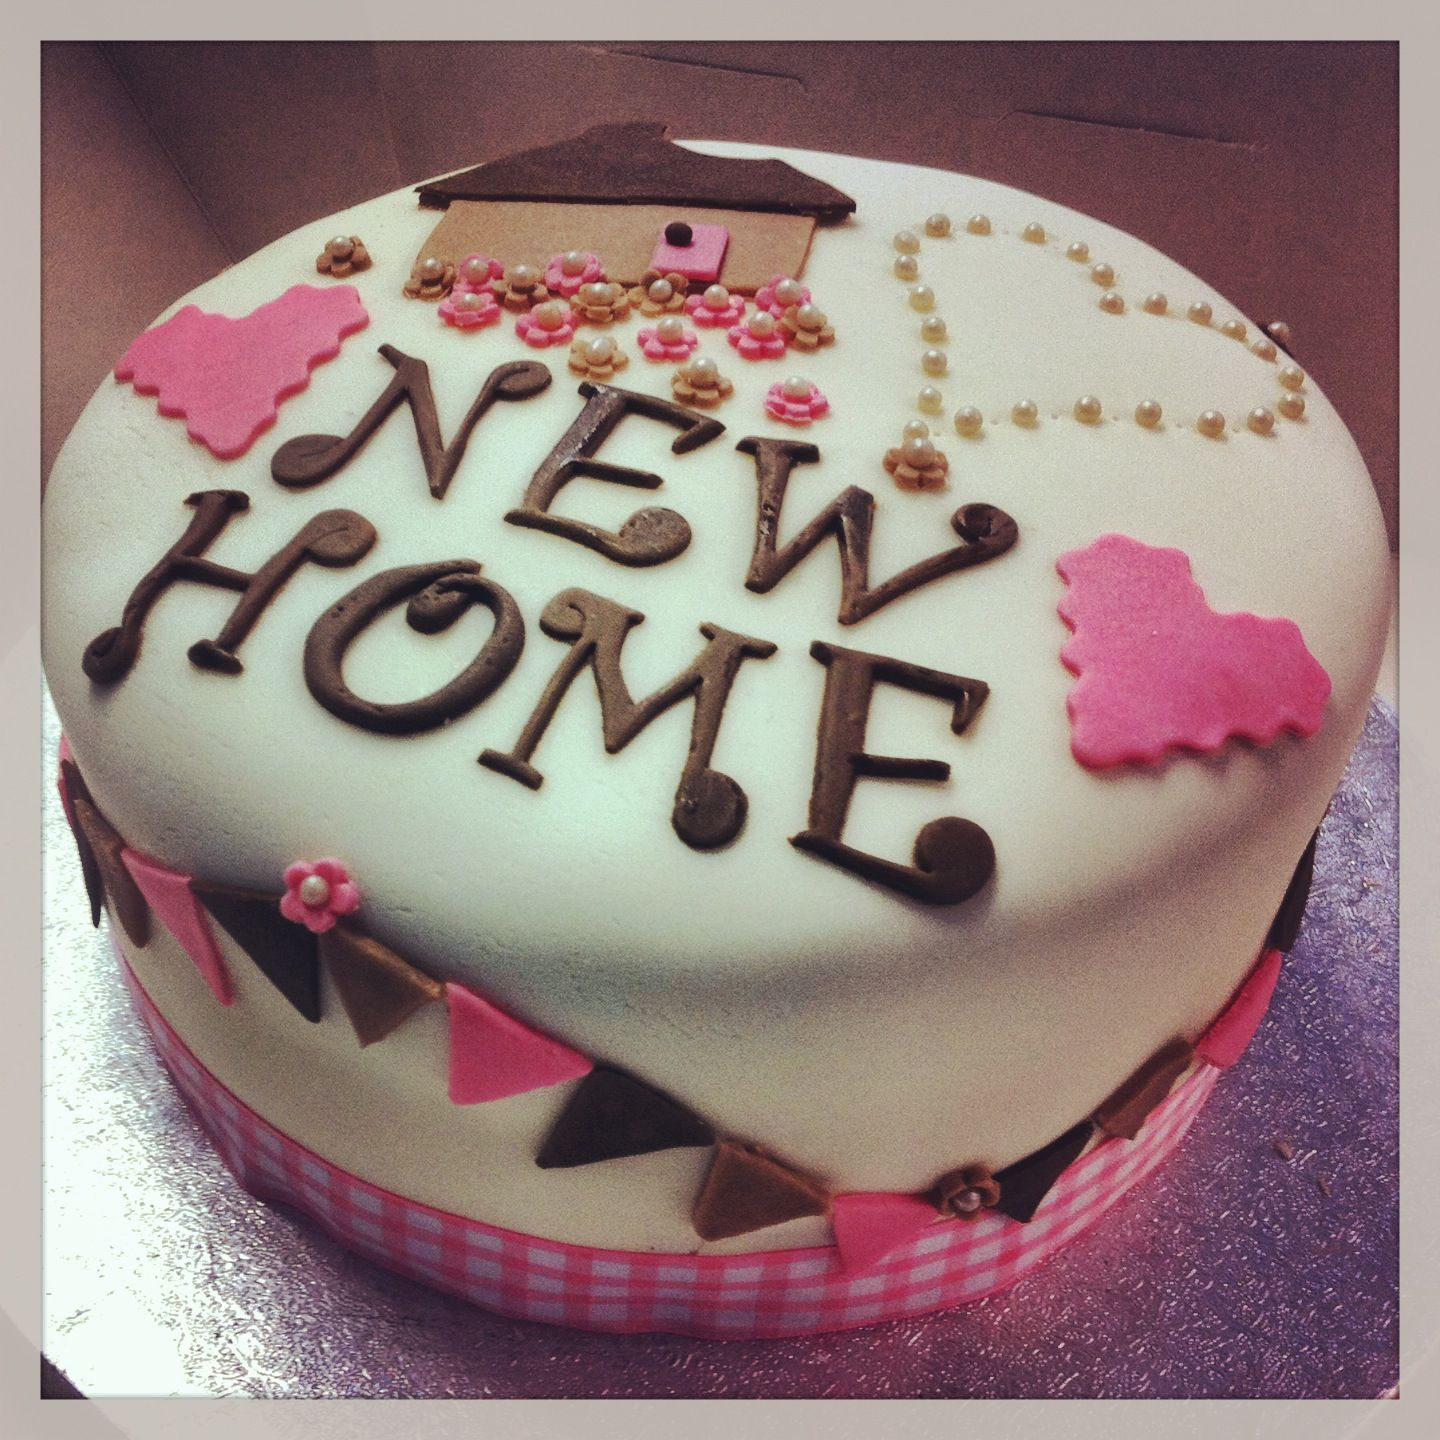 New home cake more housewarming occasion cakes warming party ideas house also best future images parties rh pinterest